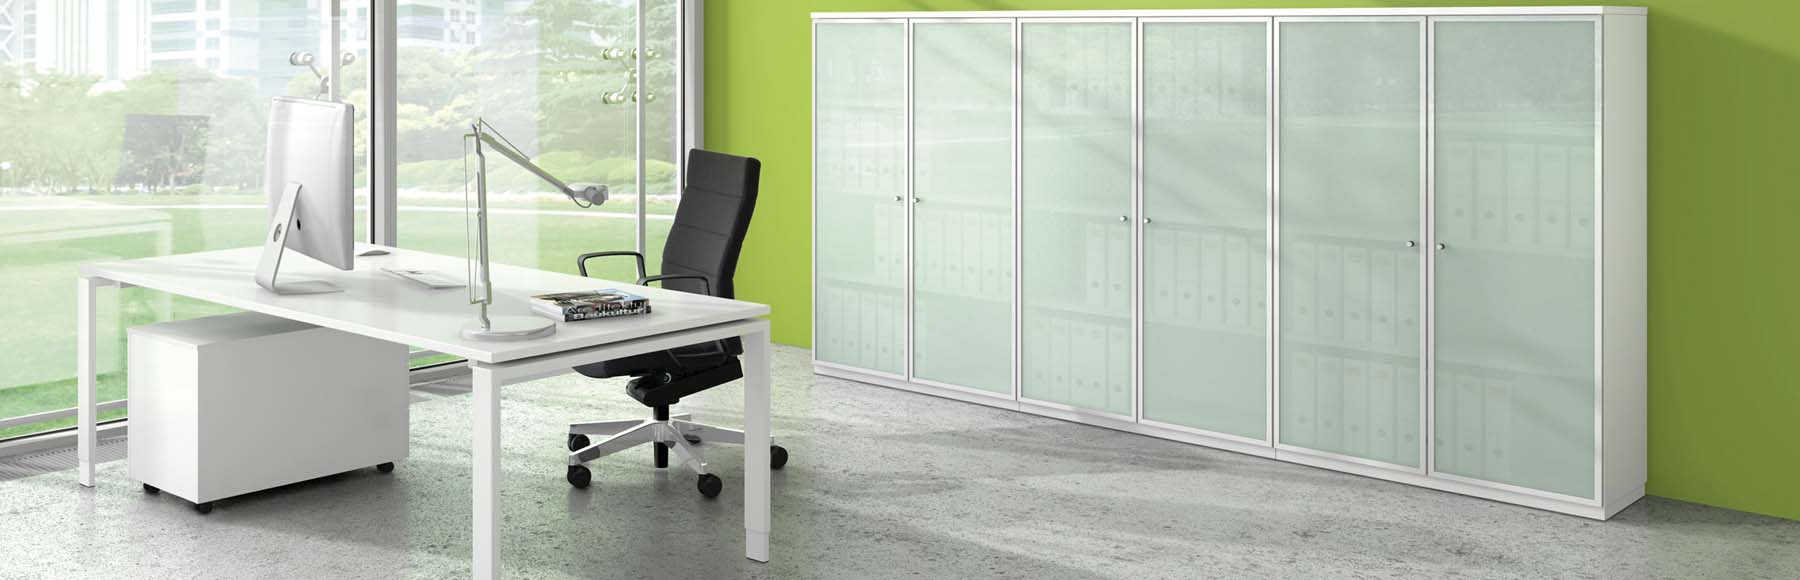 Allvia Office Cupboards & Storagewall